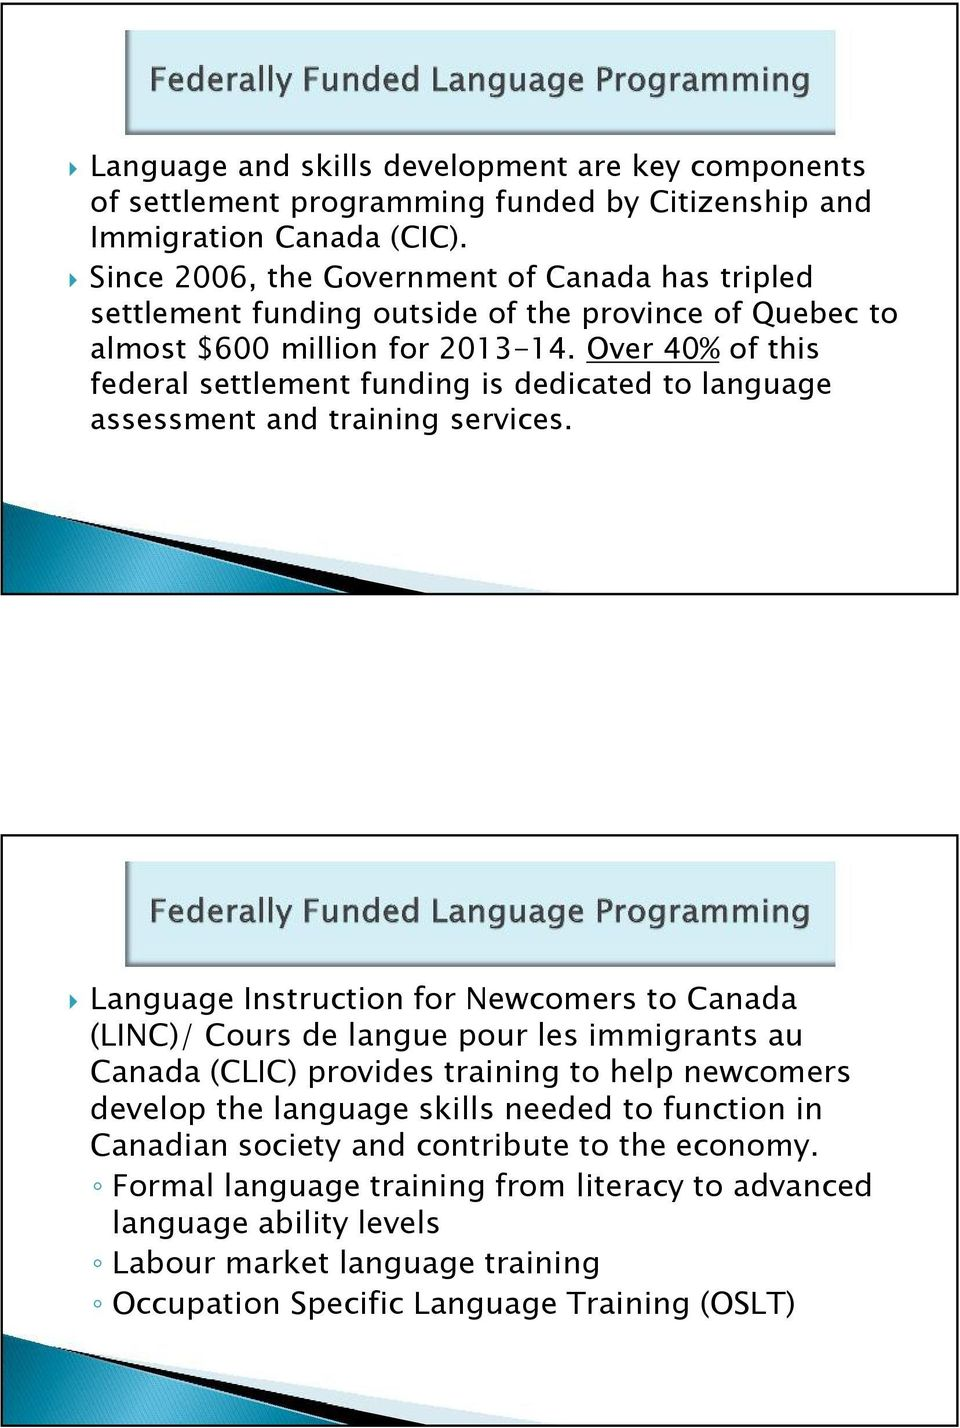 Over 40% of this federal settlement funding is dedicated to language assessment and training services.